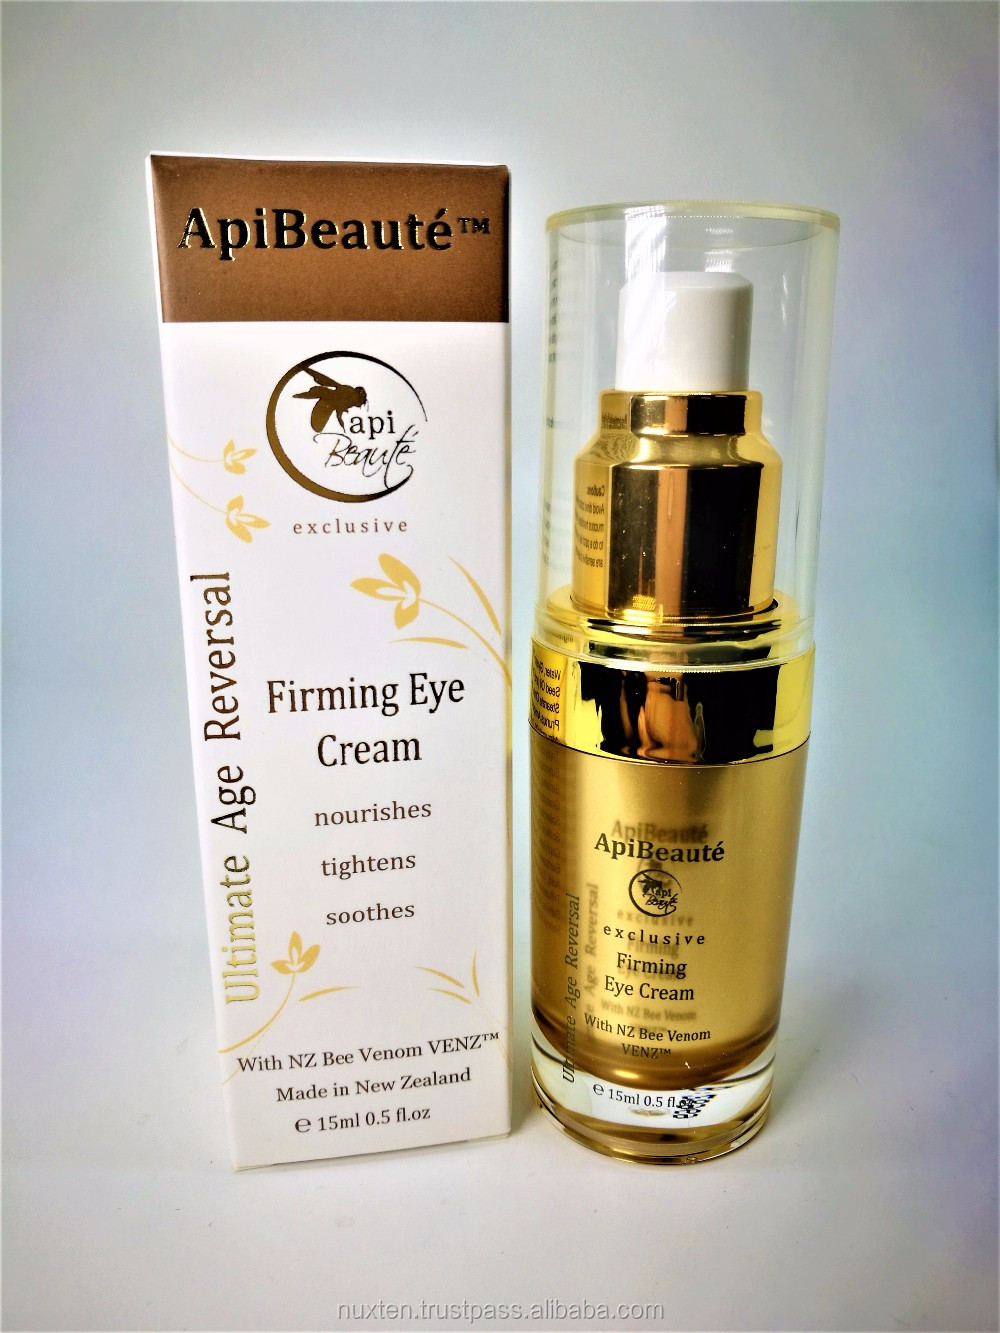 ApiBeaute: New Zealand Manuka Honey and Bee Venom Firming Eye Cream